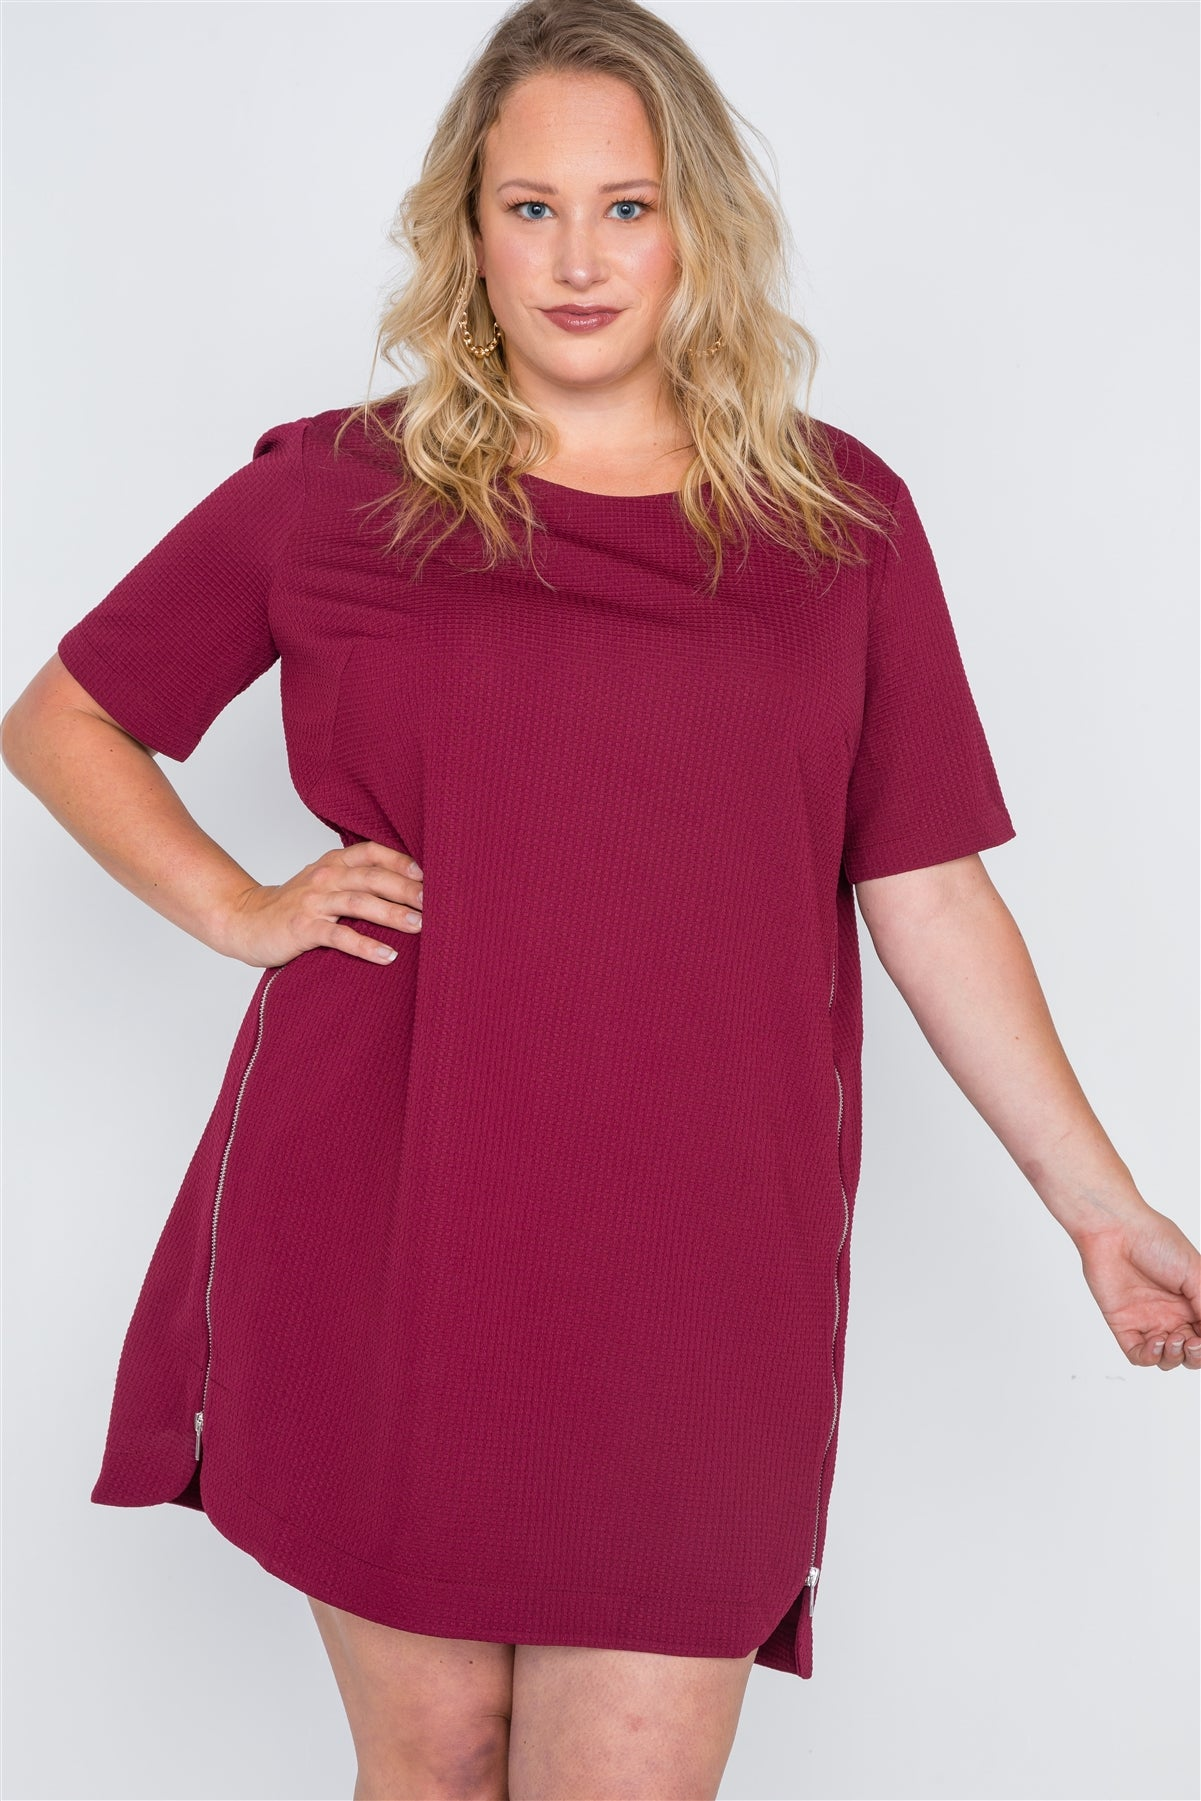 Plus Size Burgundy Textured Short Sleeve Dress